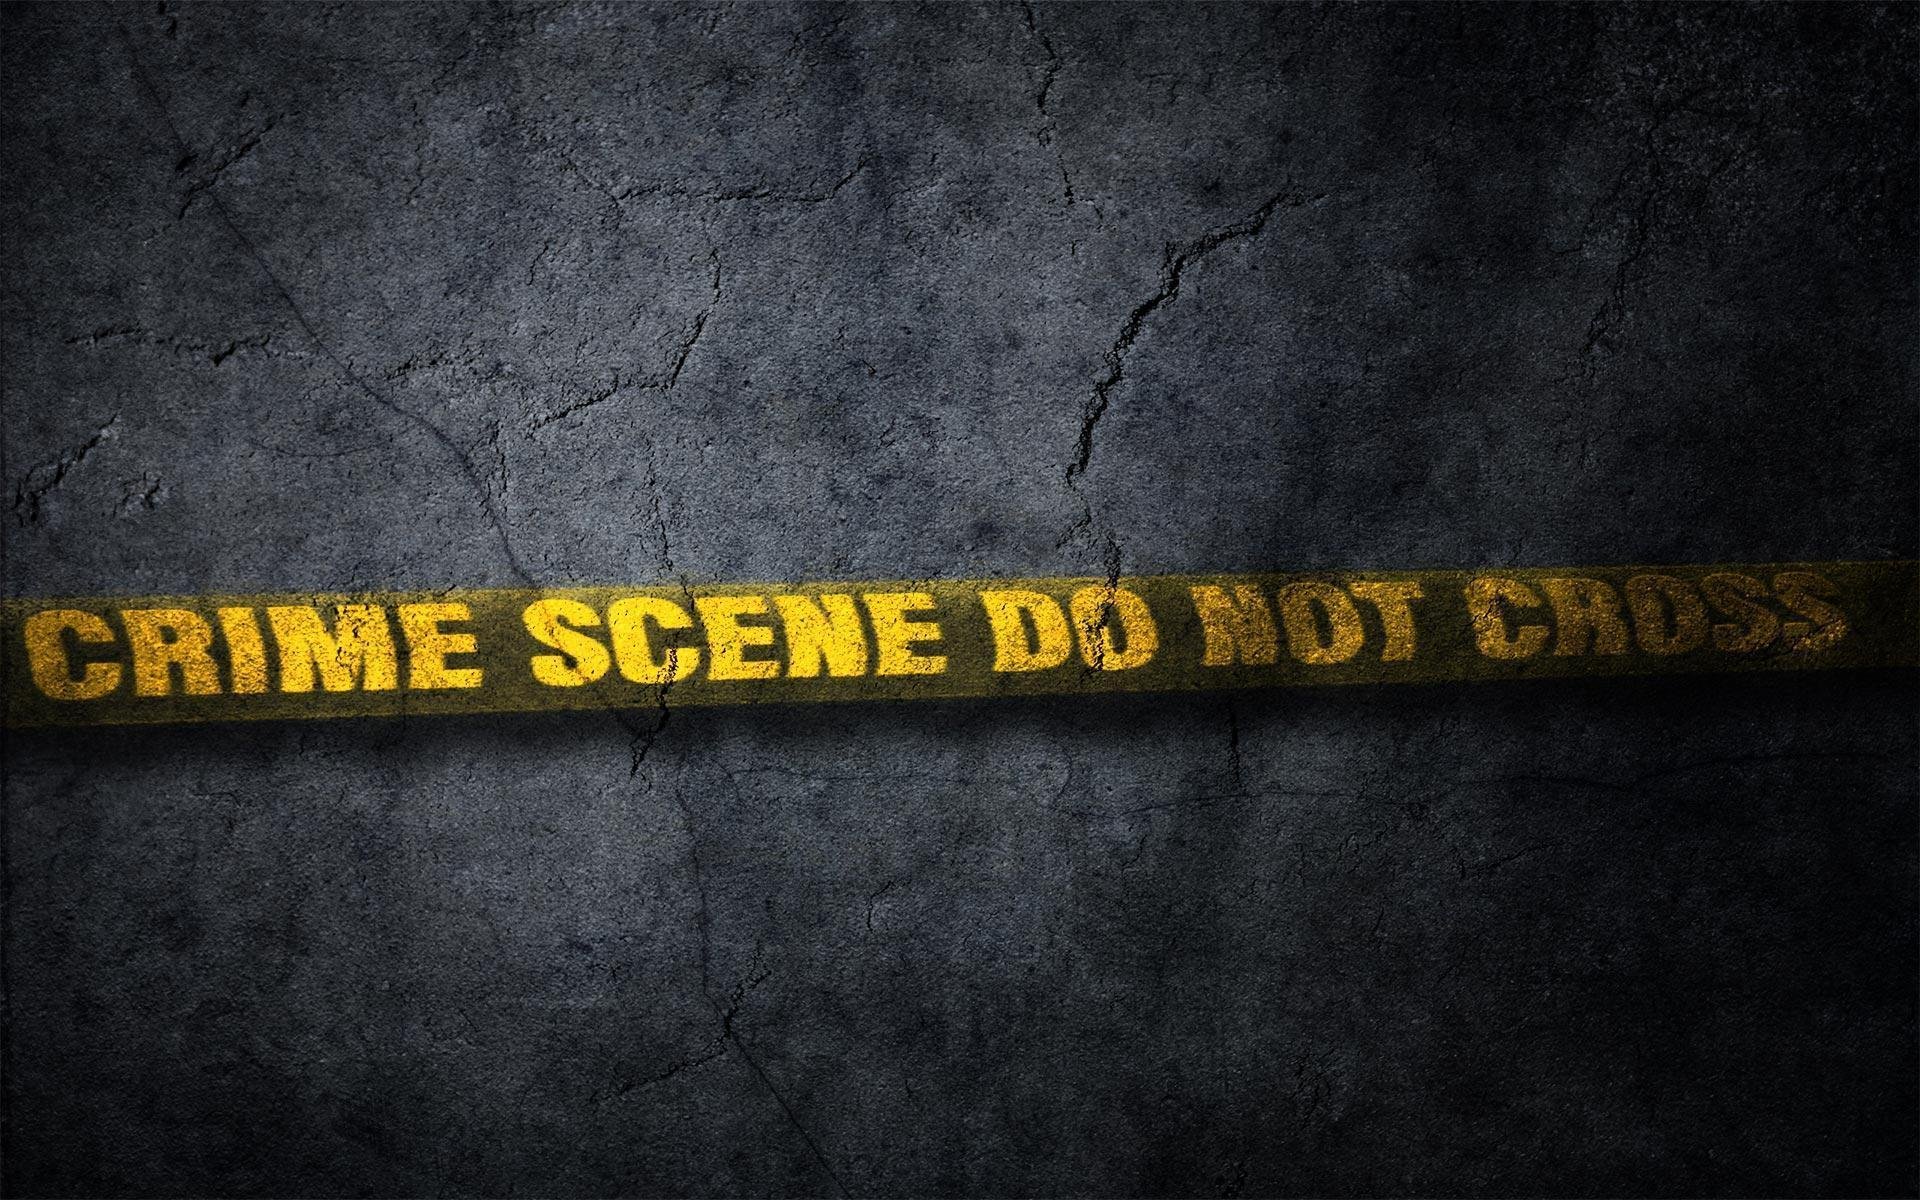 Crime Scene Do Not Cross Wallpapers HD Free Dow Wallpapers